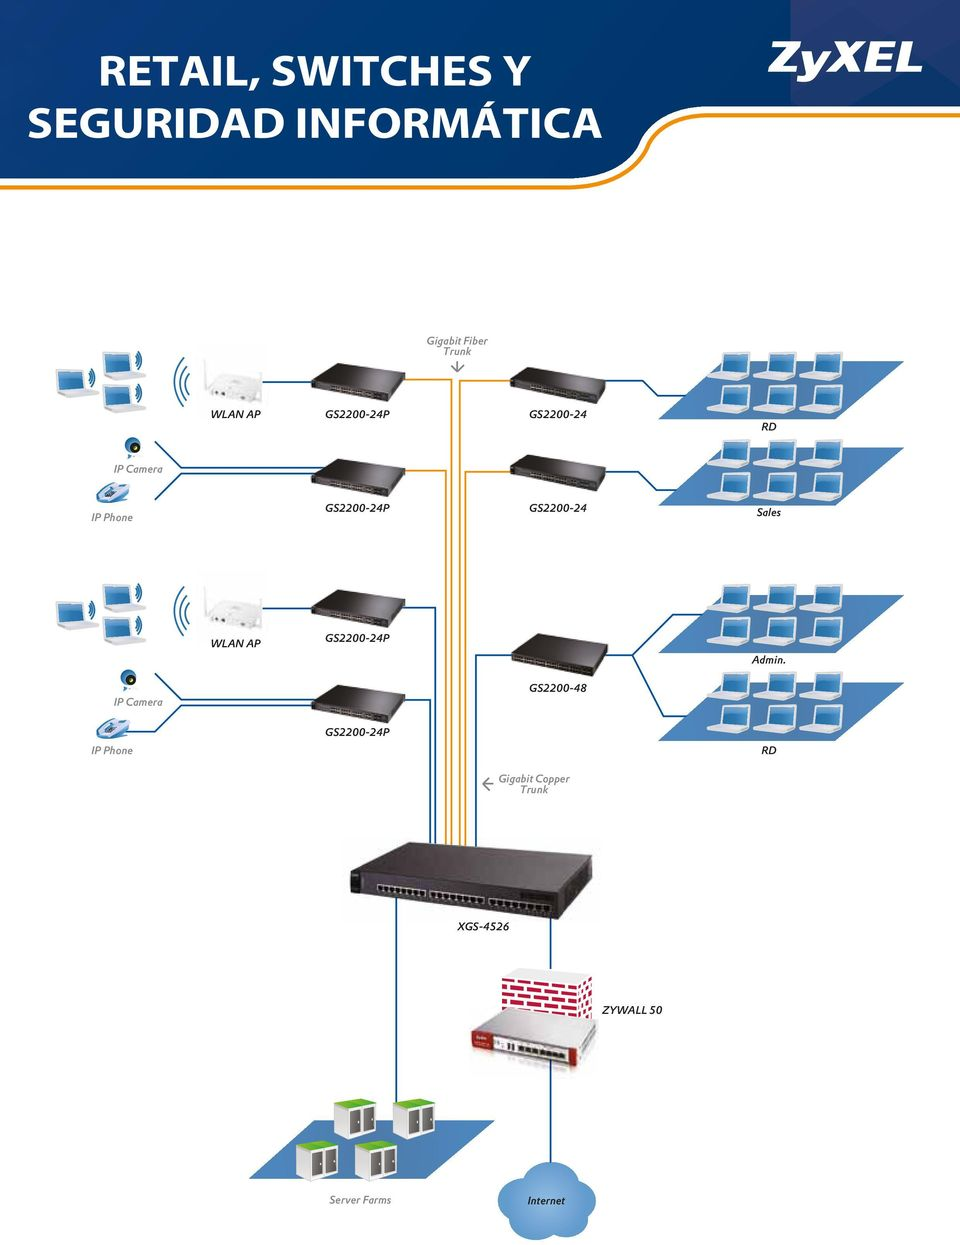 Sales WLAN AP GS2200-24P Admin.